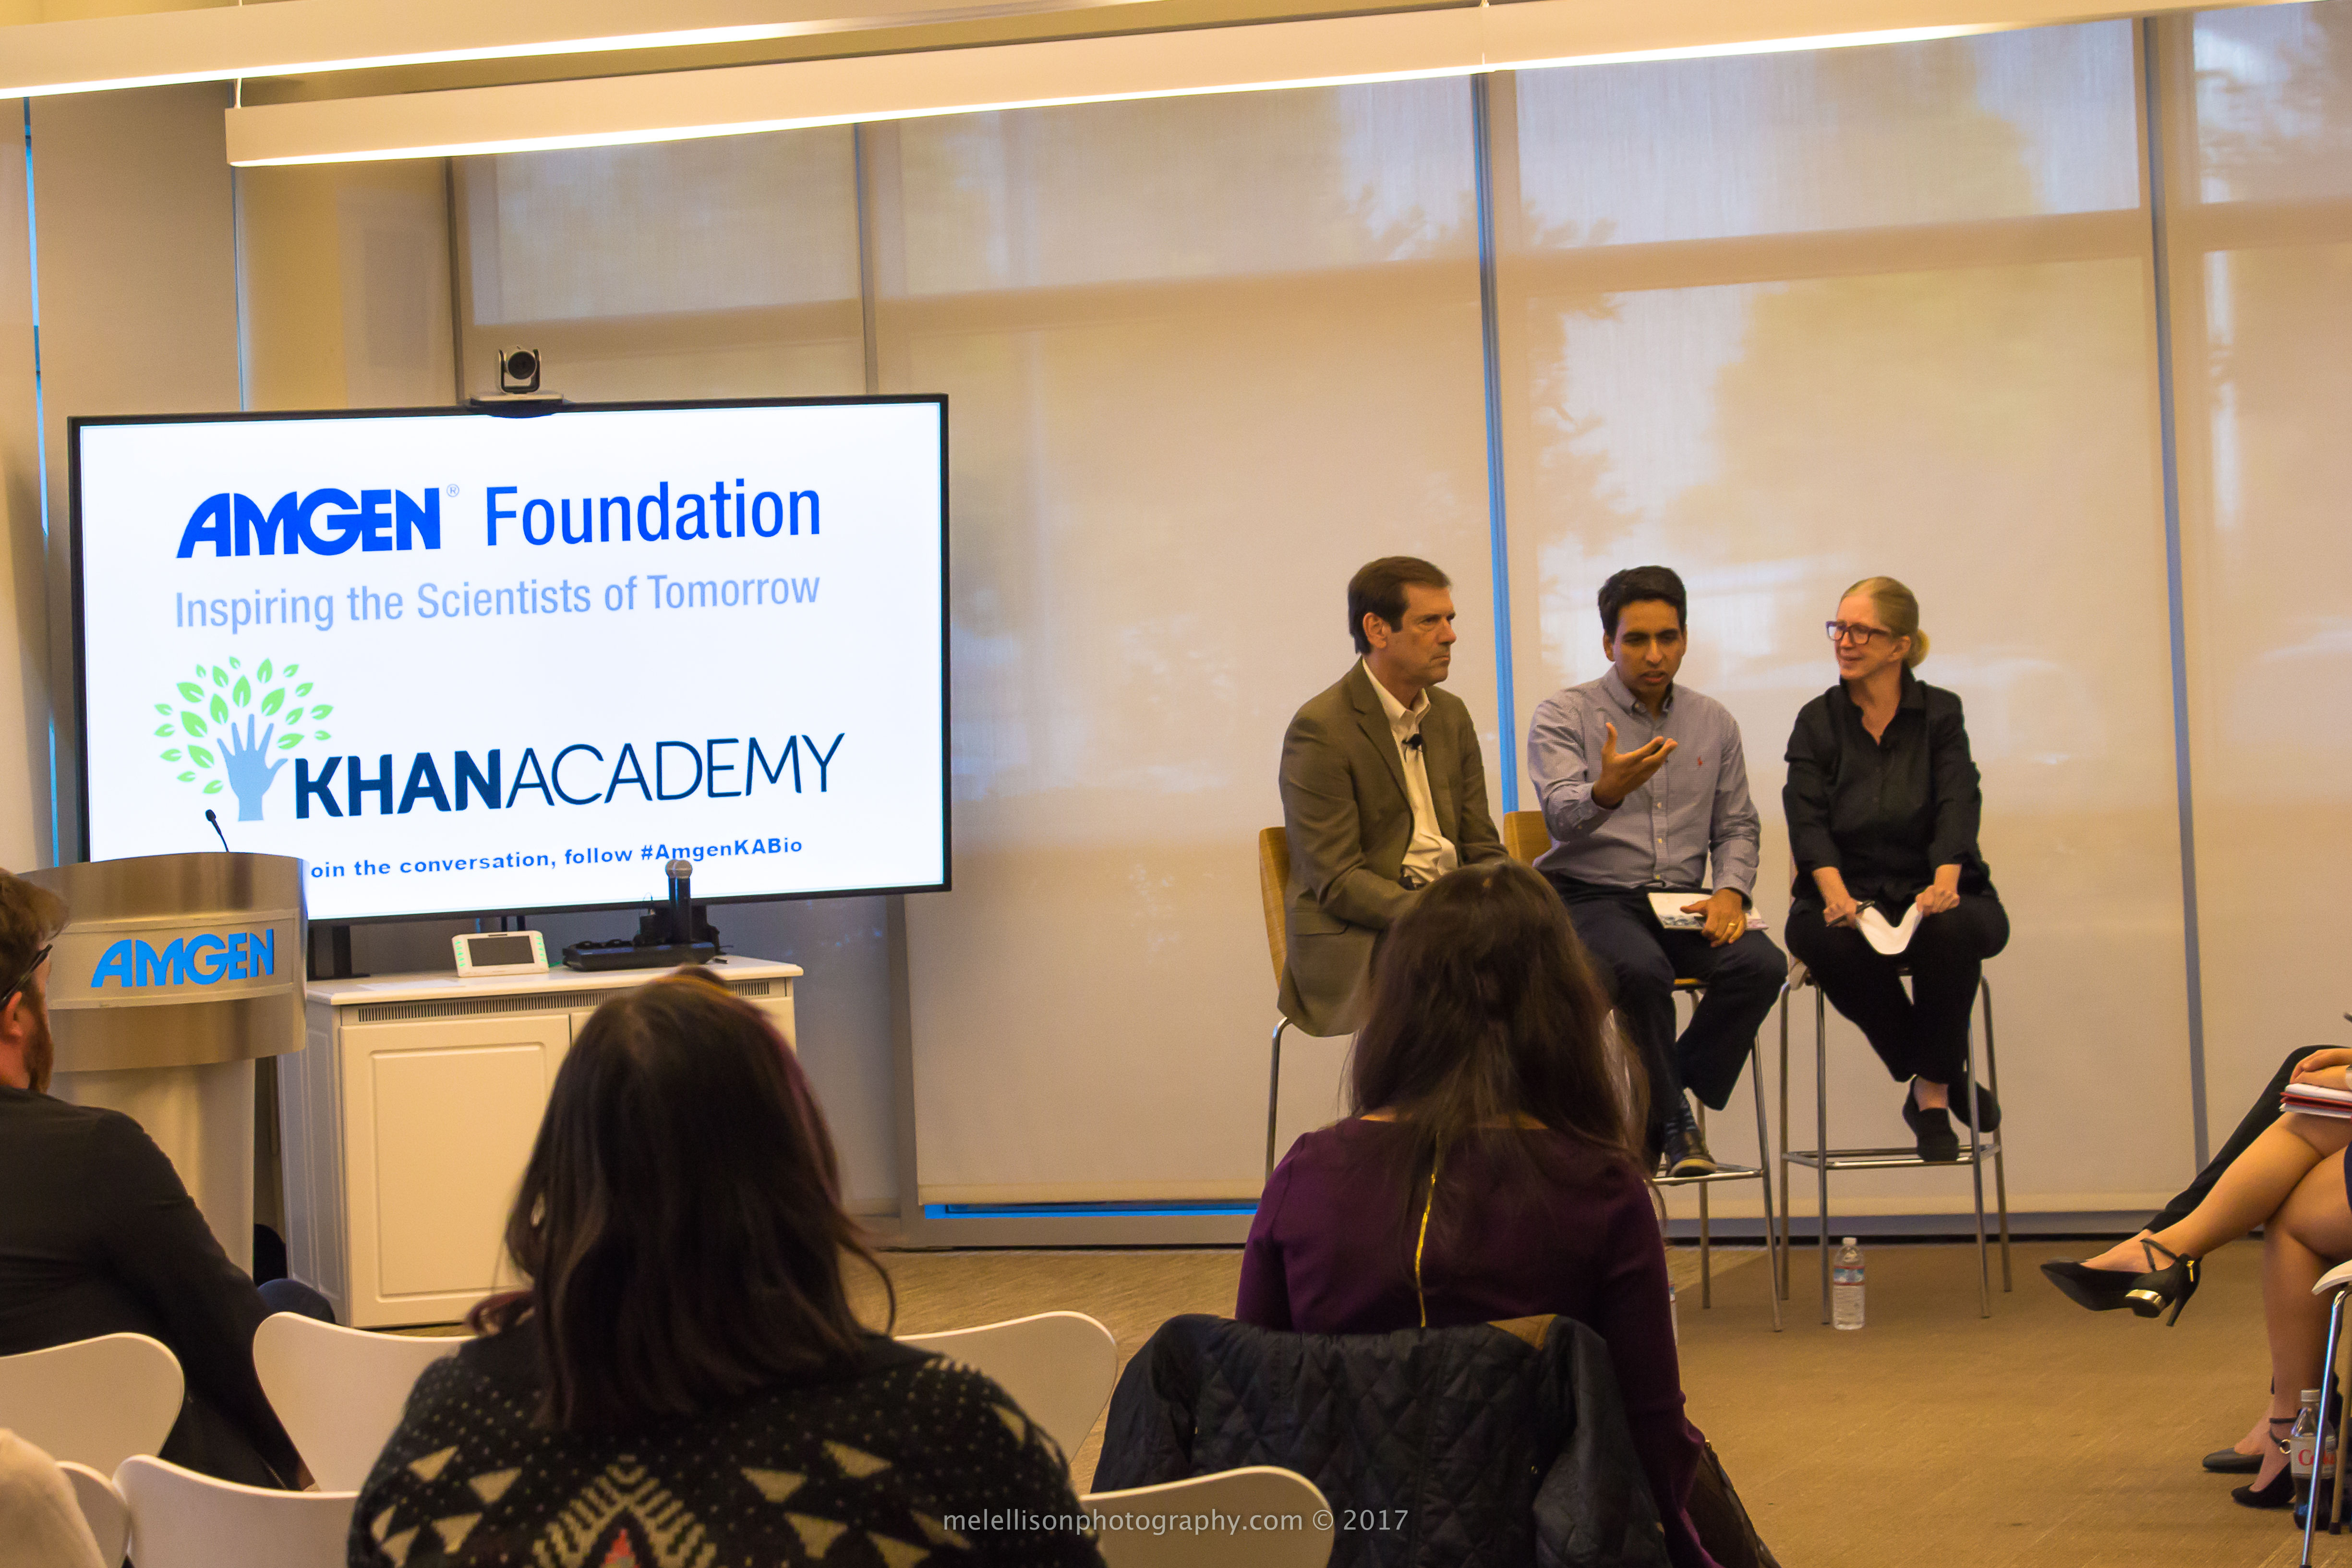 Everything South City On Scene; Khan Academy Receives $3M Grant from Amgen